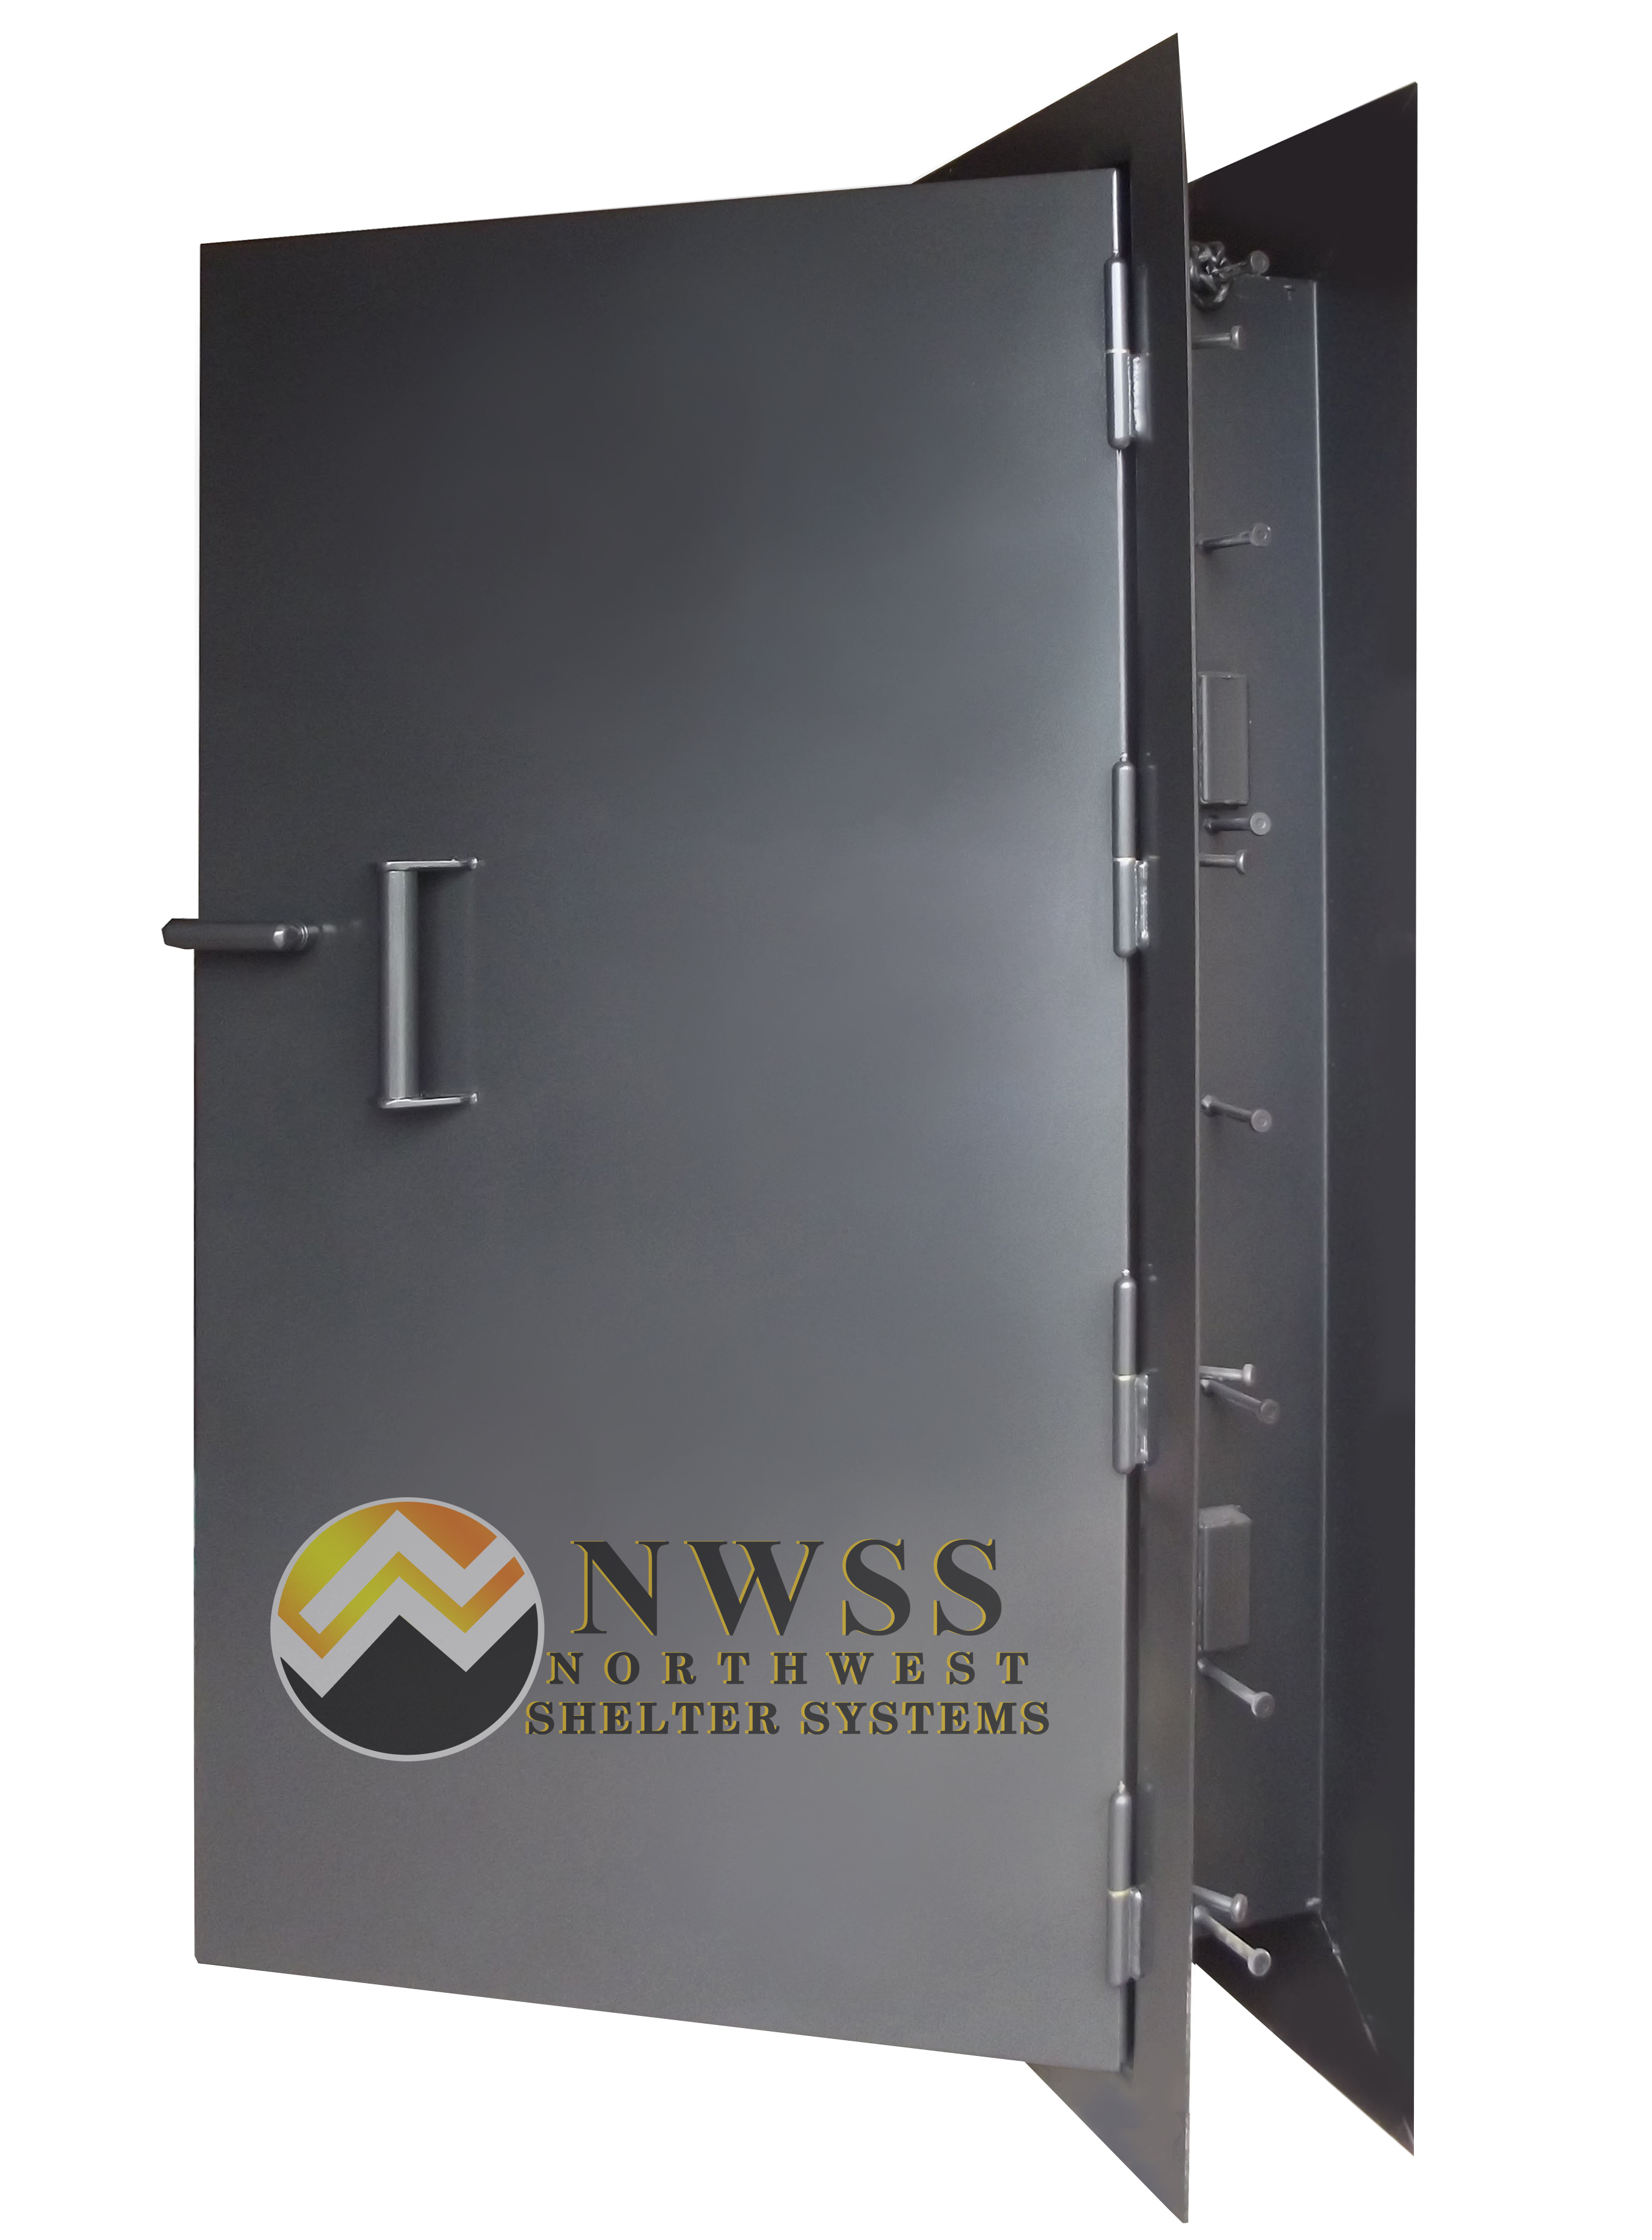 High Security Shelter : Steel and concrete filled blast doors for high security